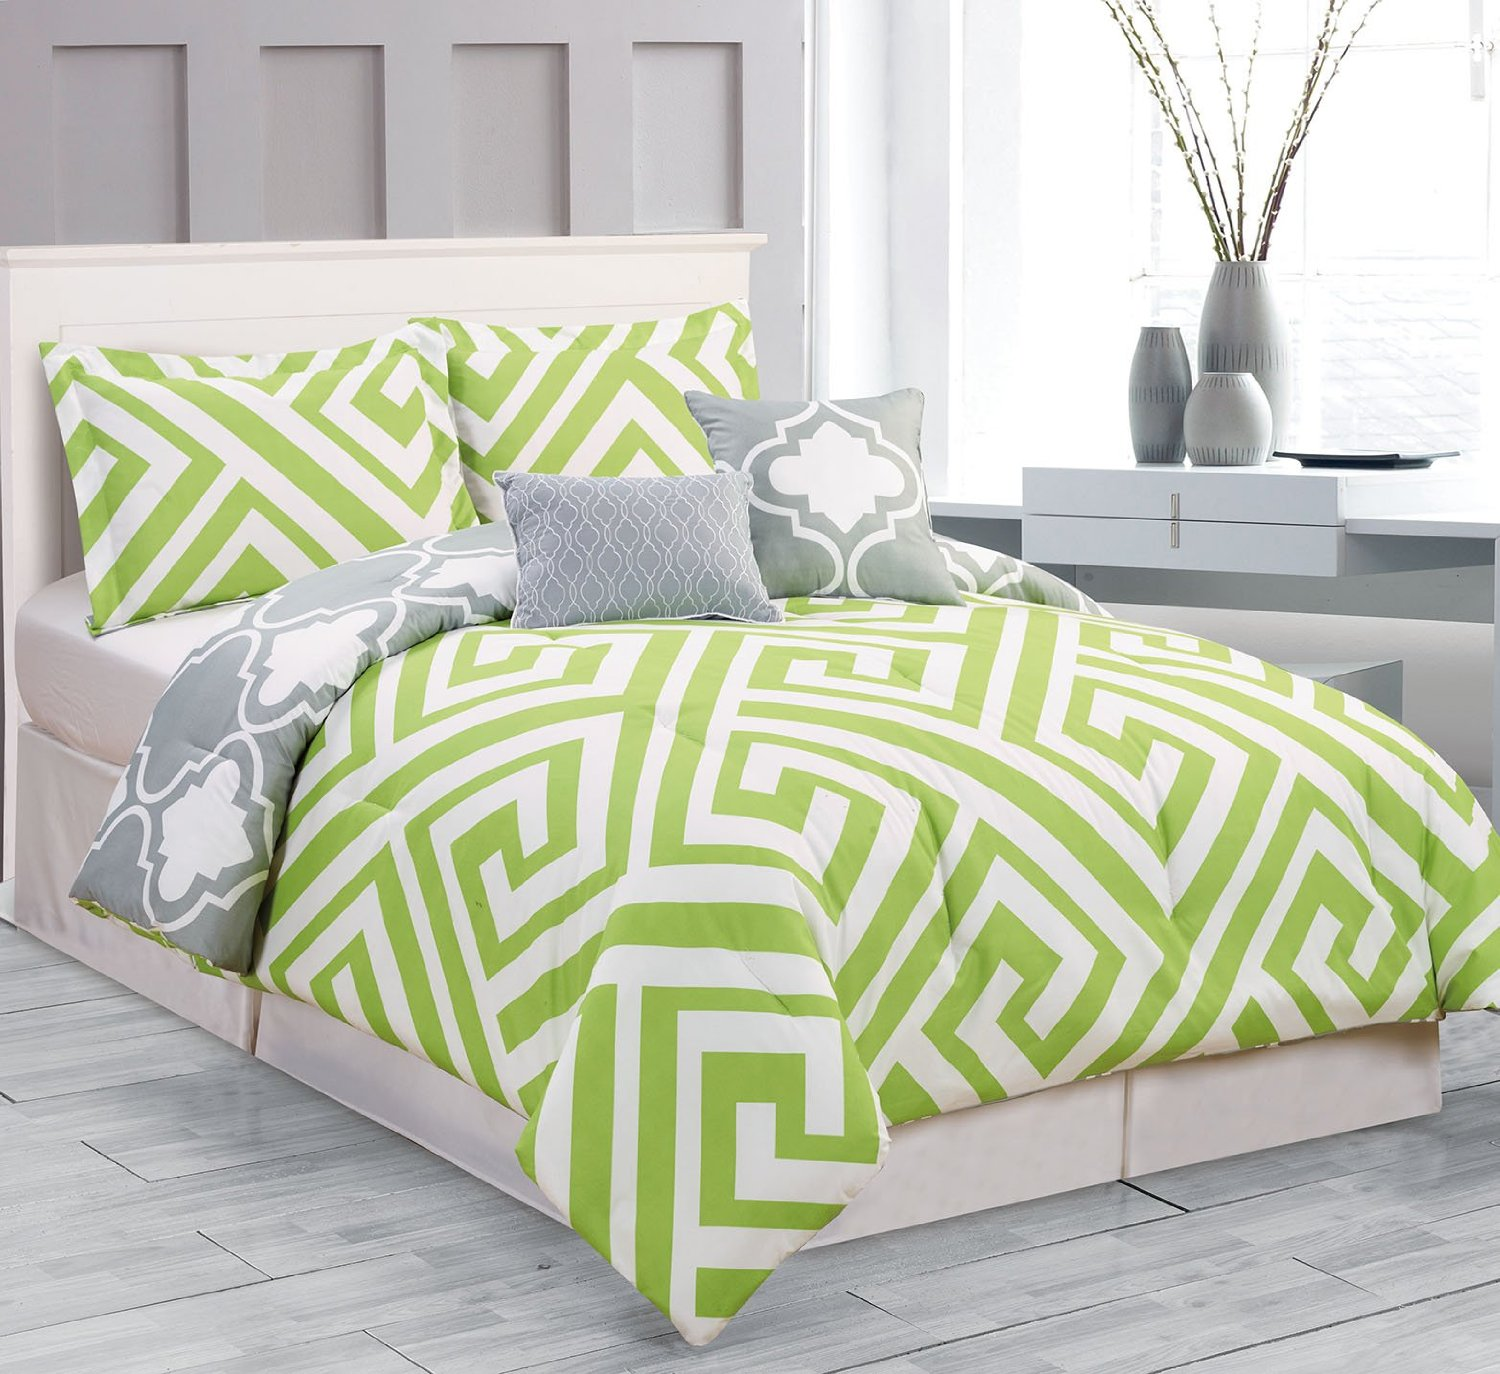 constrain cover tassel bedding outfitters ca urban en qlt green b linens medium bed washed cotton canada duvet fit